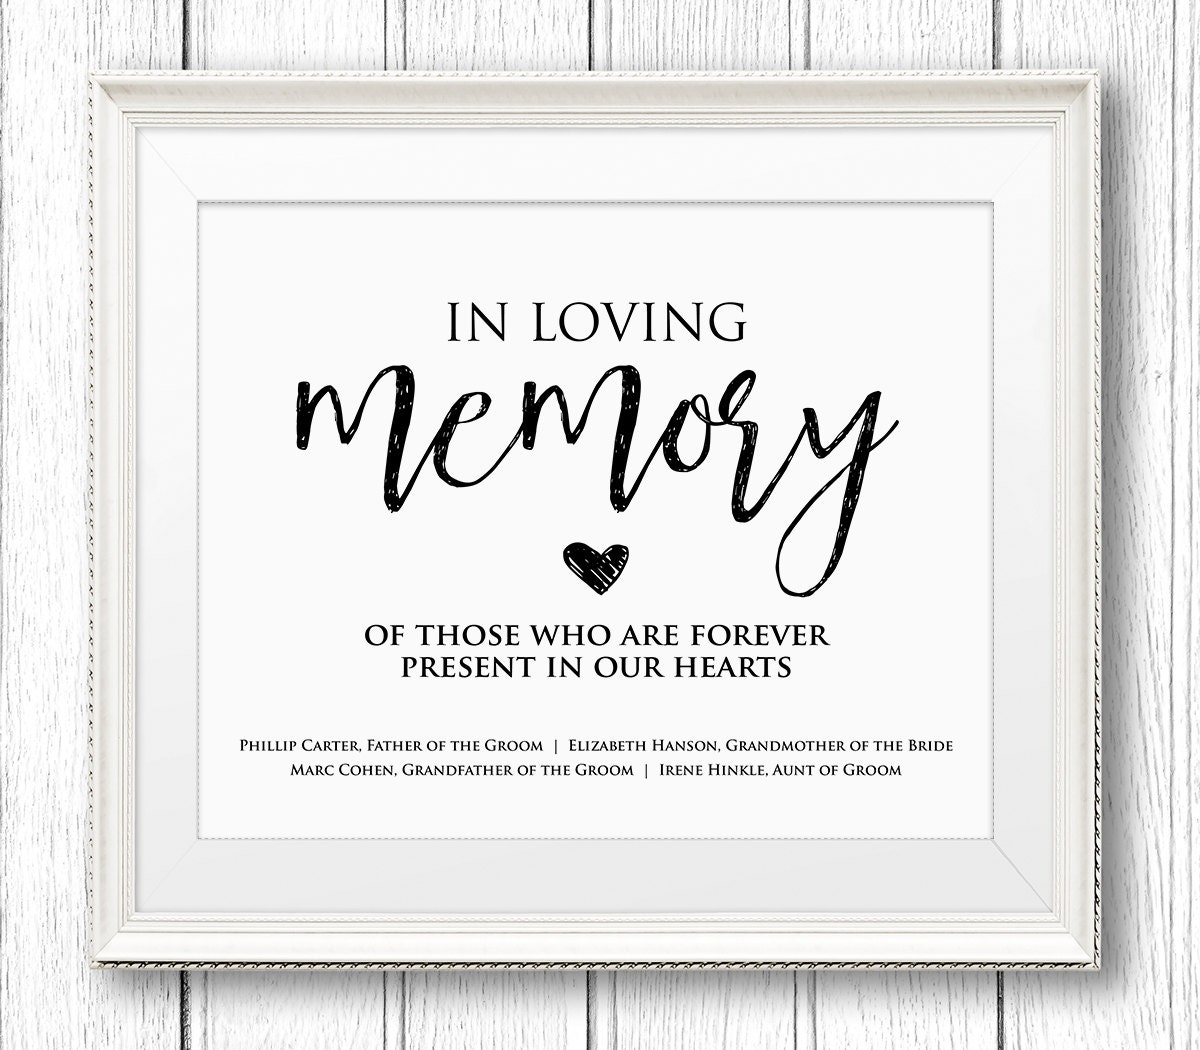 In loving memory wedding sign editable text personalize for In loving memory templates free